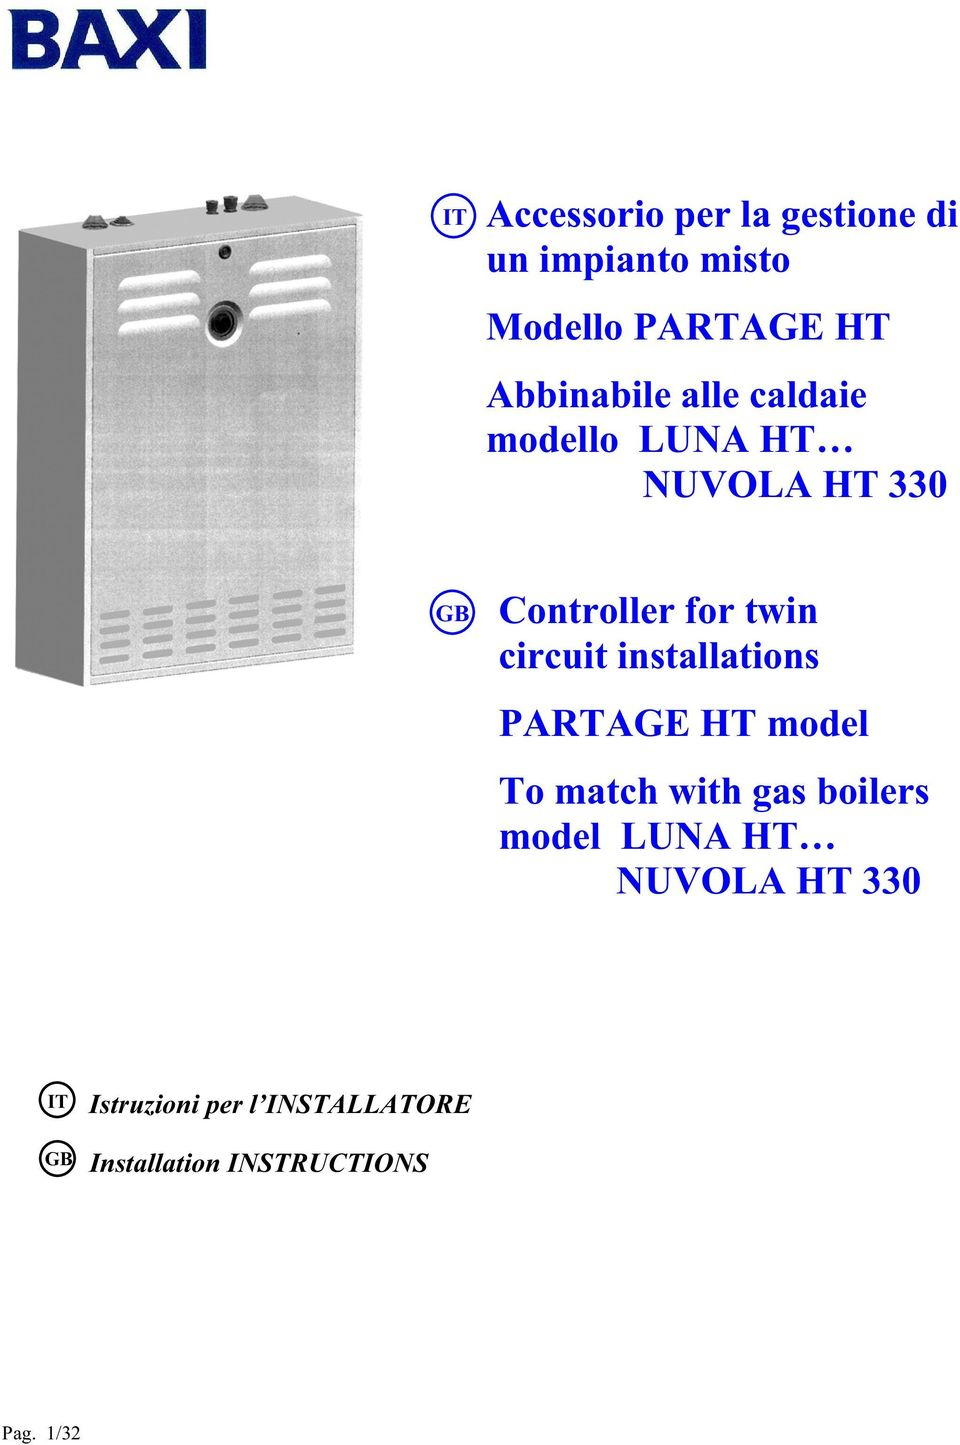 circuit installations PARTAGE HT model To match with gas boilers model LUNA